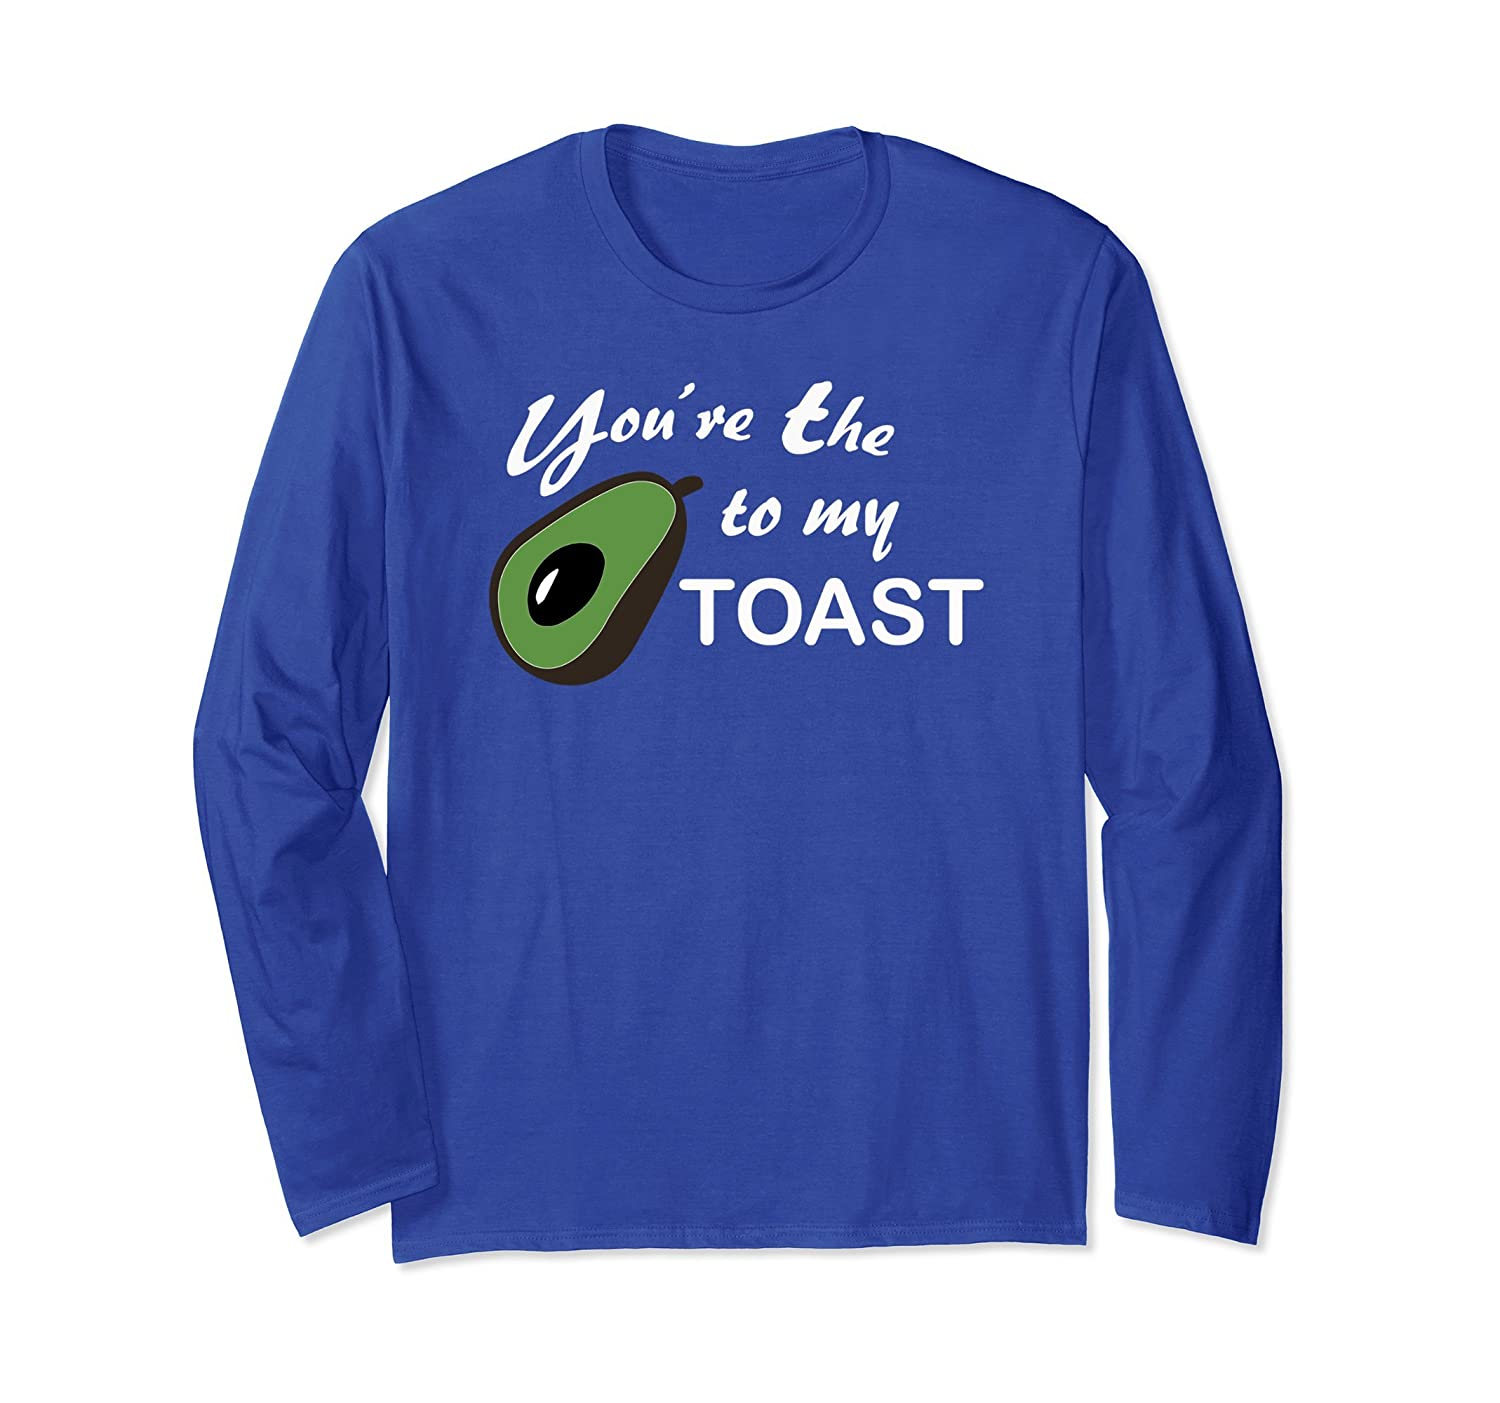 You're The Avocado to my Toast Funny Long Sleeve T-shirt-ah my shirt one gift